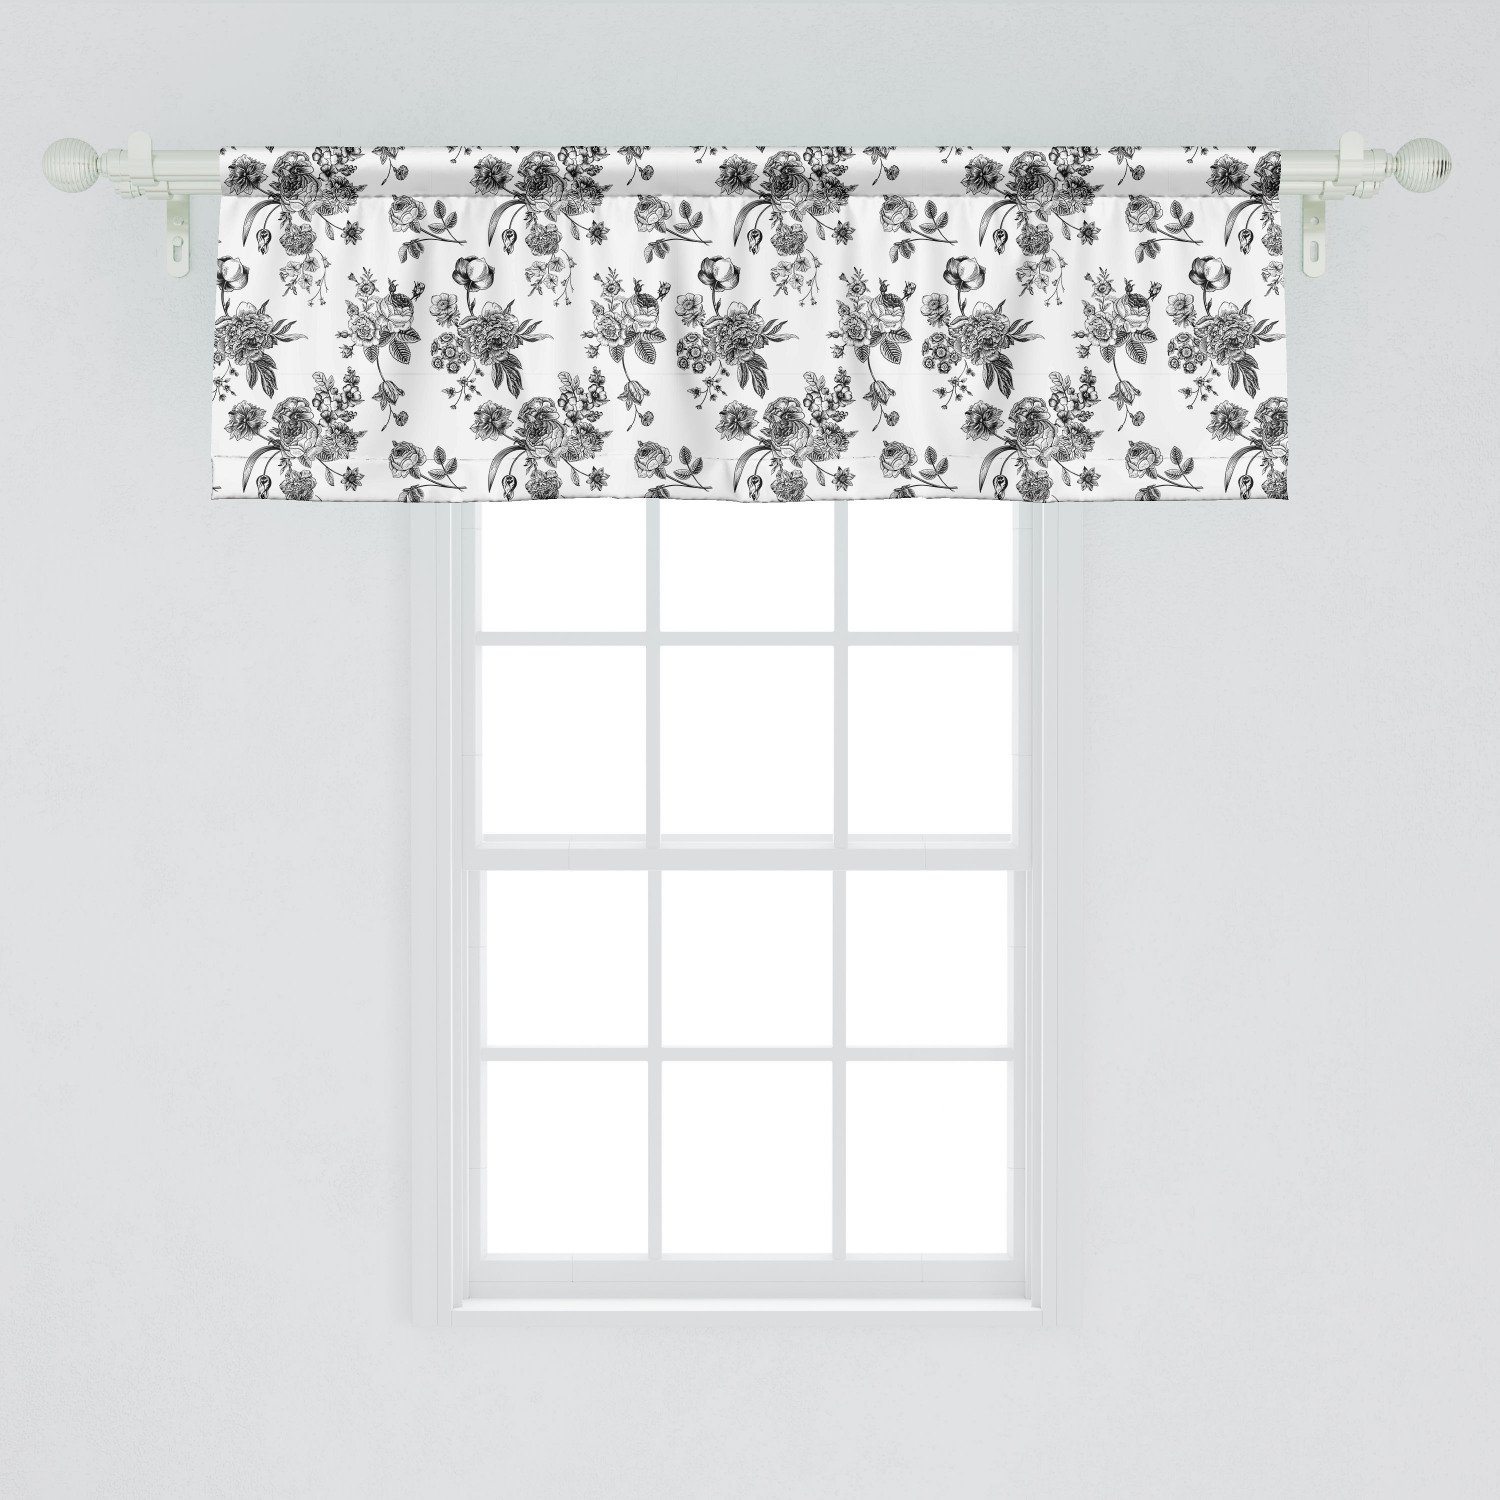 Ambesonne Black and White Window Valance, Vintage Floral Pattern Victorian  Classic Royal Inspired New Modern Art, Curtain Valance for Kitchen Bedroom  ...